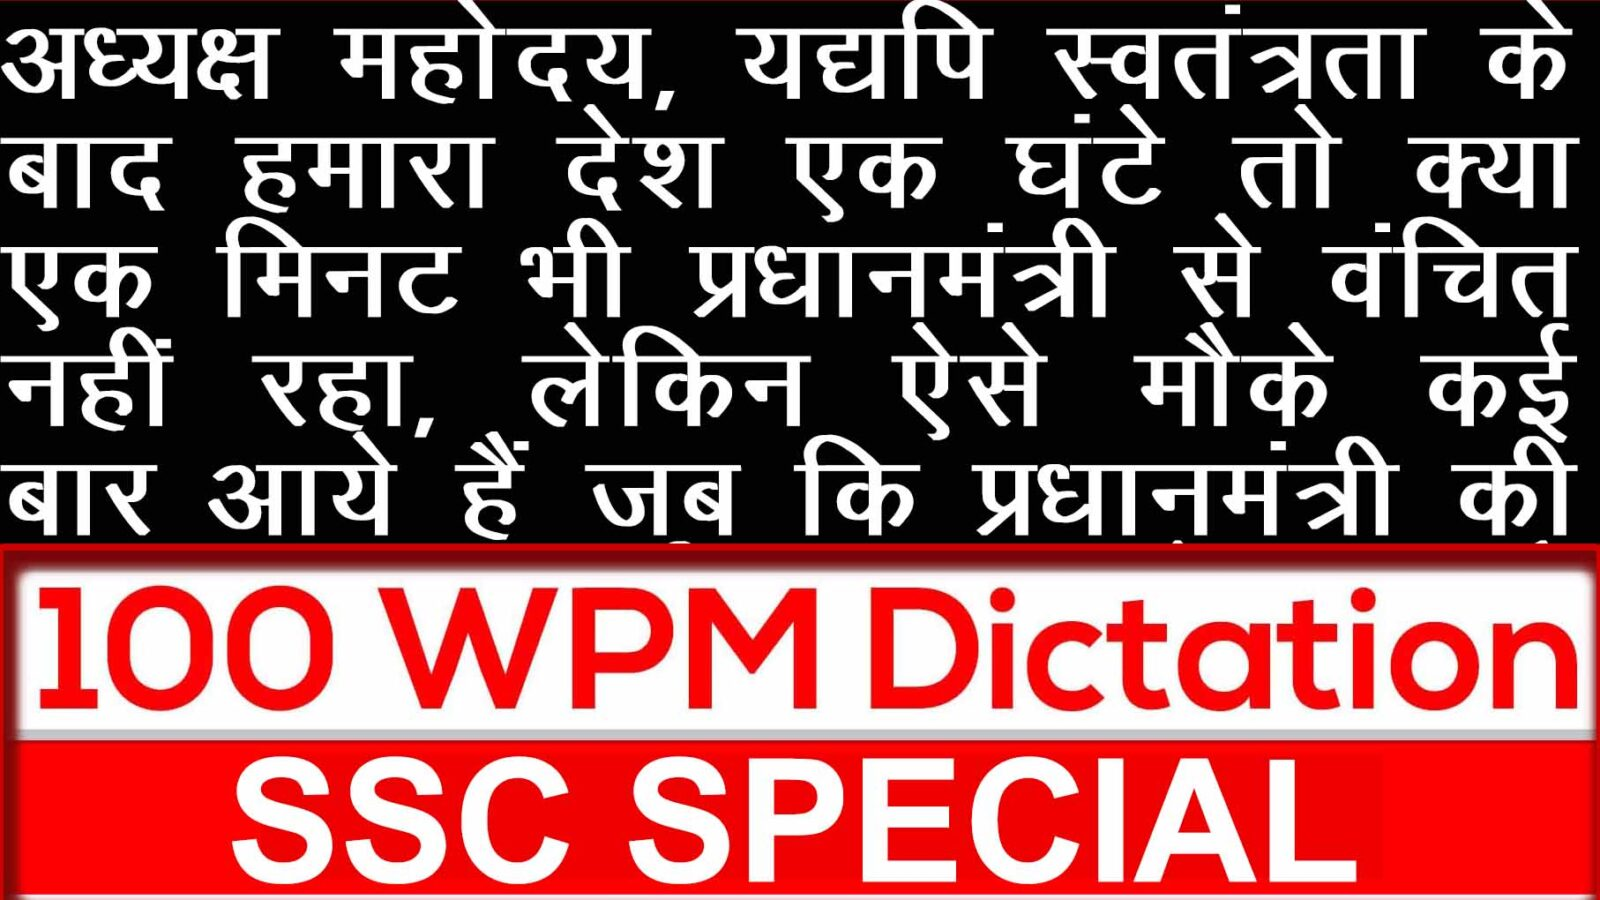 ssc special 100 wpm hindi shorthand dictattion